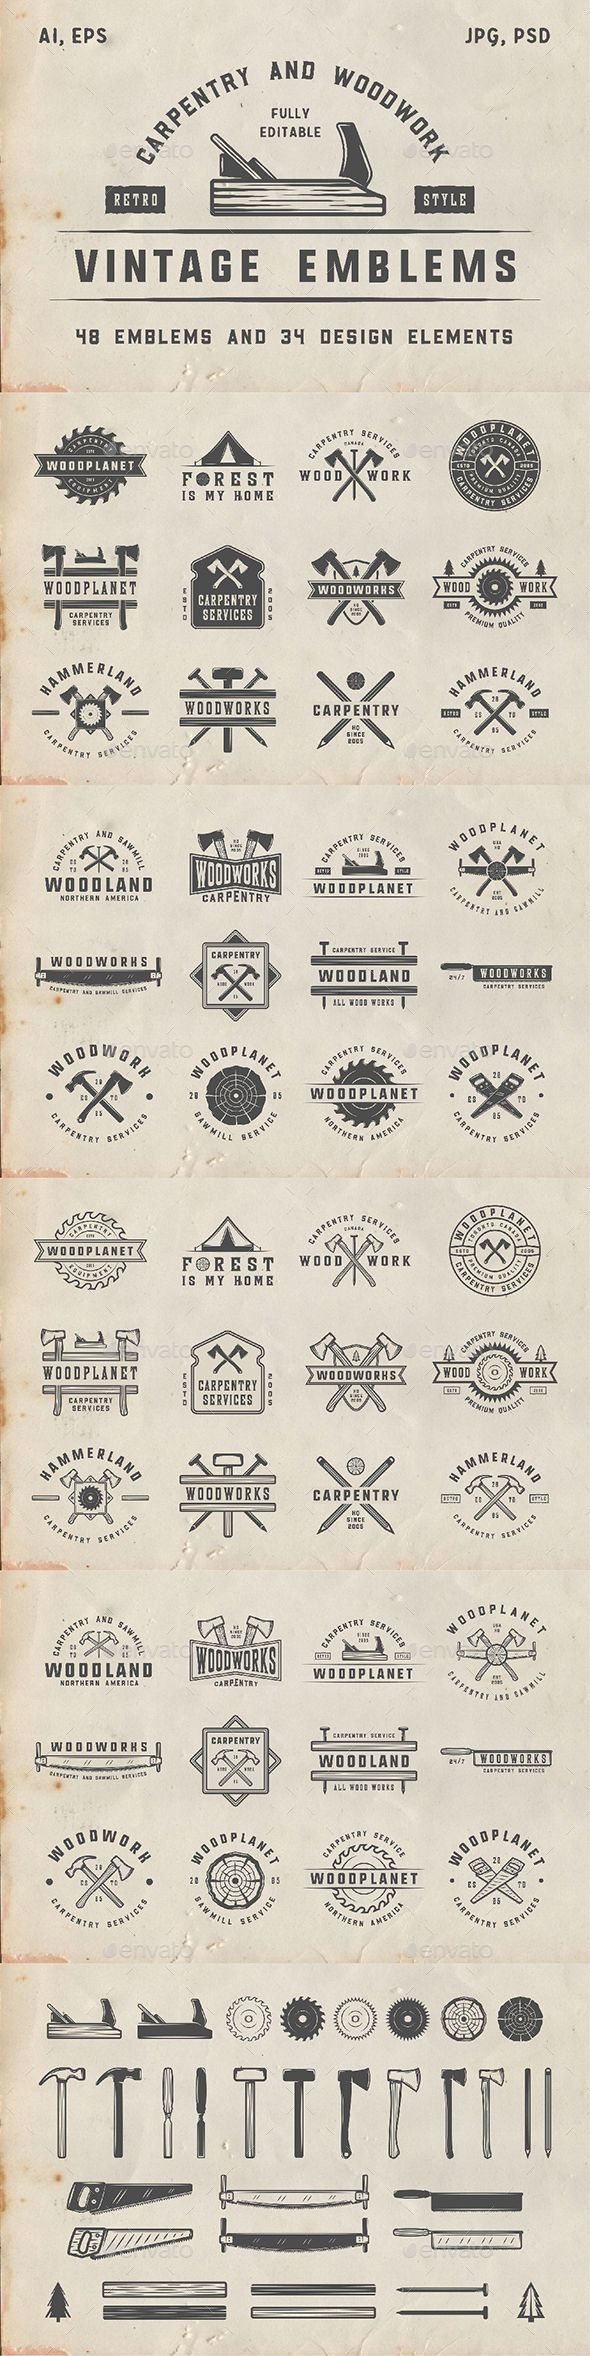 48 Vintage Carpentry Emblems Set of vintage carpentry and woodworks emblemsm, badges, logos and design elements You can use it for logo design, badge design, emblems, sport, shop sign, t-shirt prints and much more.  You get:  48 emblems 34 design elements Product features: All files are in AI, EPS, PSD, PNG and JPG formats. 100% Vectors / Fully scalable / Fully editable; Text 100% editable and can be easely removed. Fonts and mock-ups are not included. List of used fonts: Montana Barley…